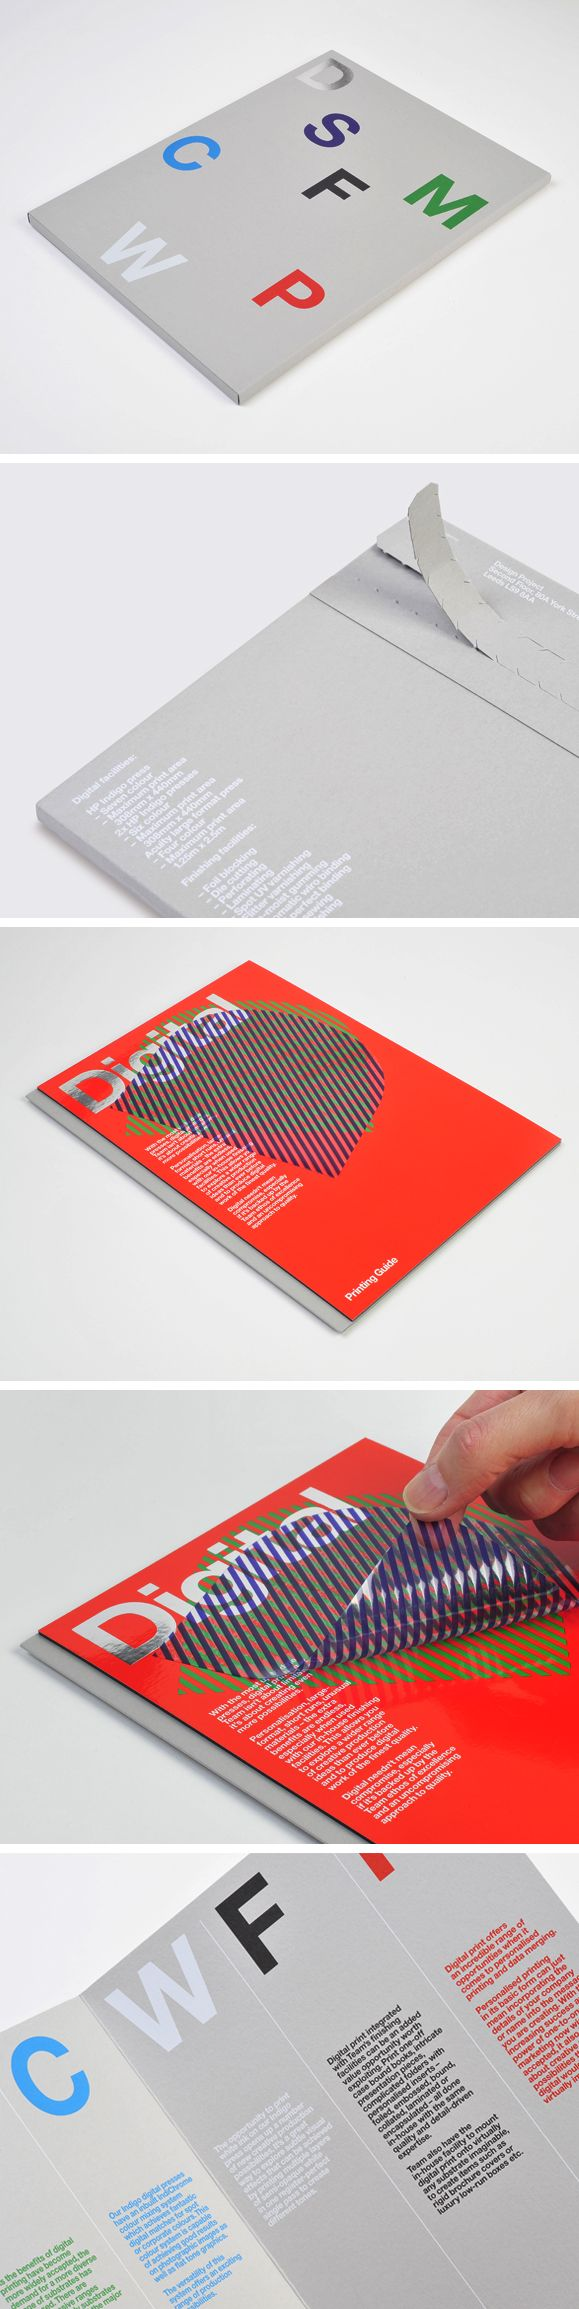 Team Impression printing guide, designed by Design Project